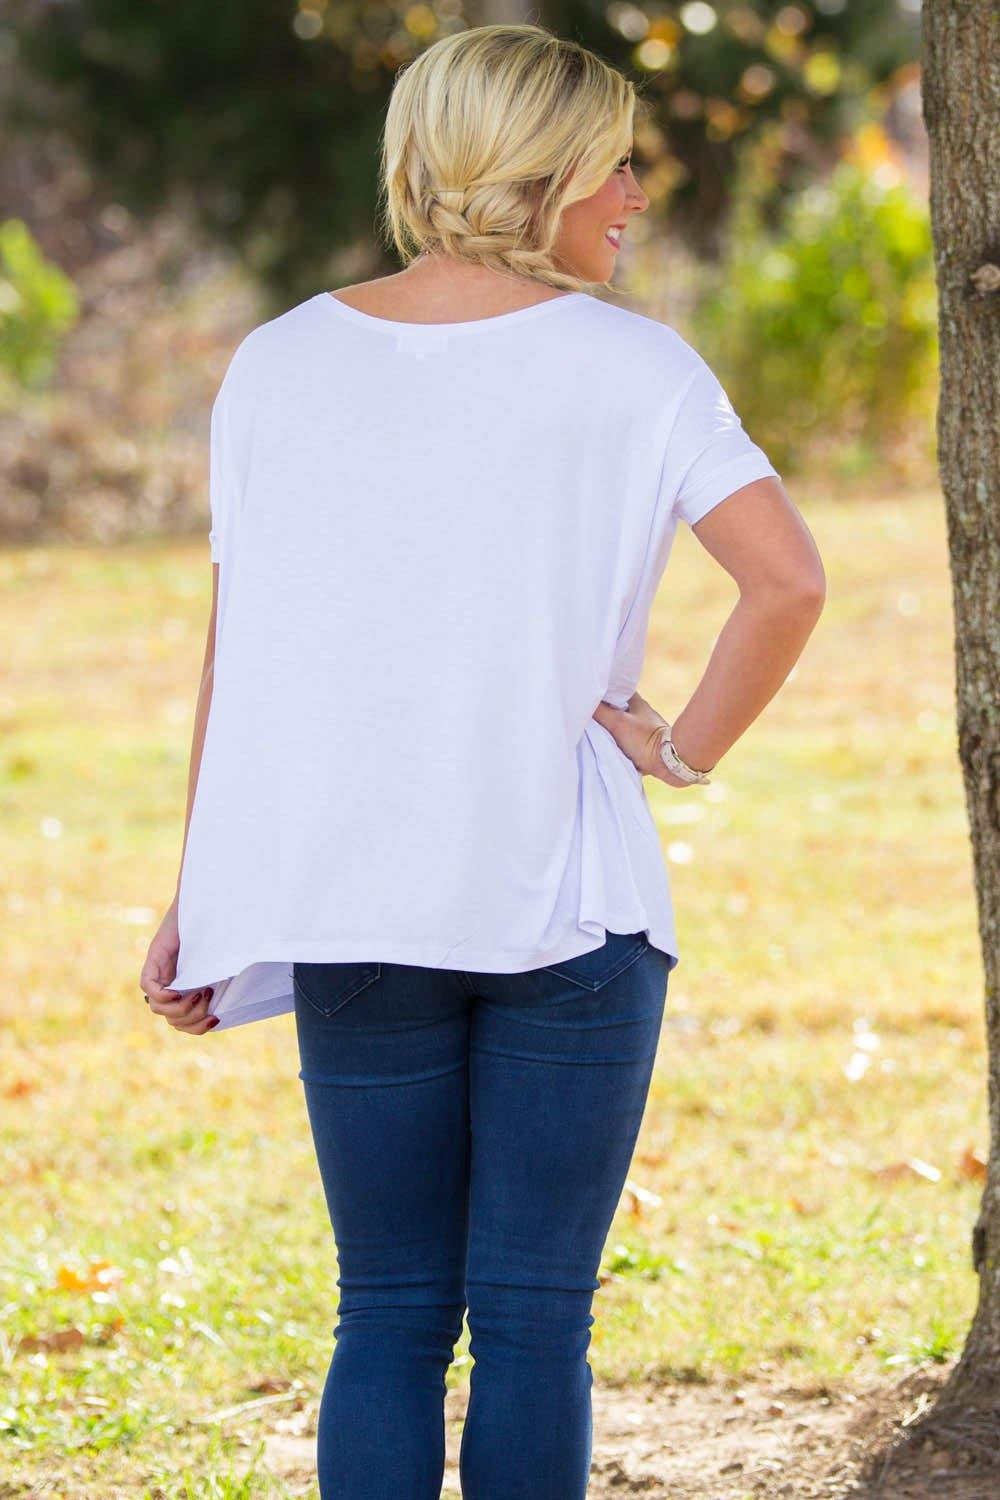 Short Sleeve Piko Top - White - Piko Clothing - 2